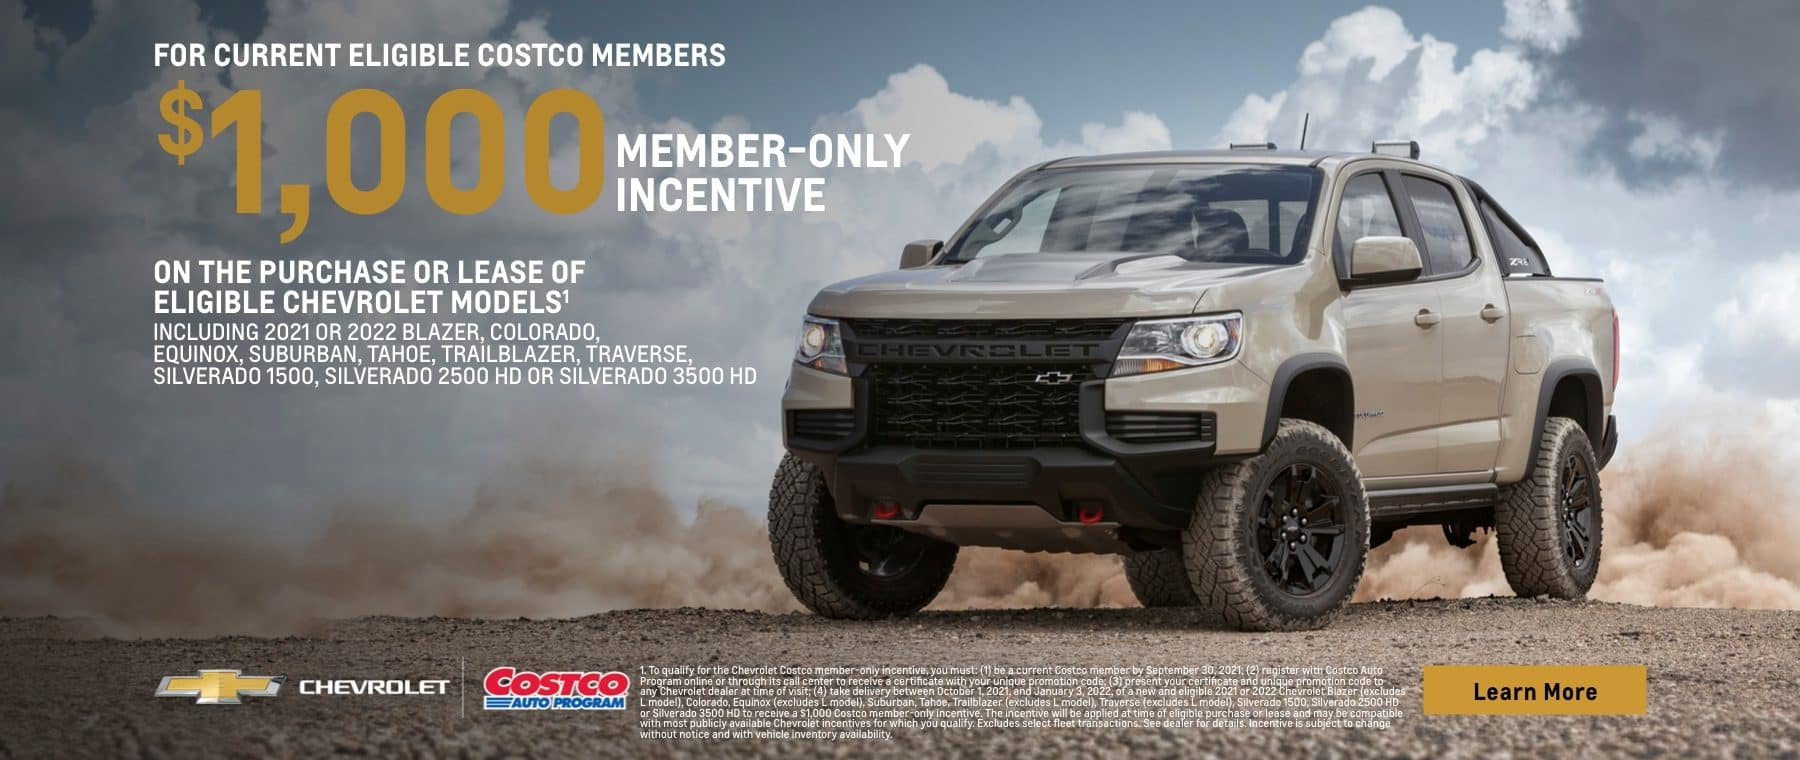 1,000 Member Only Incentive